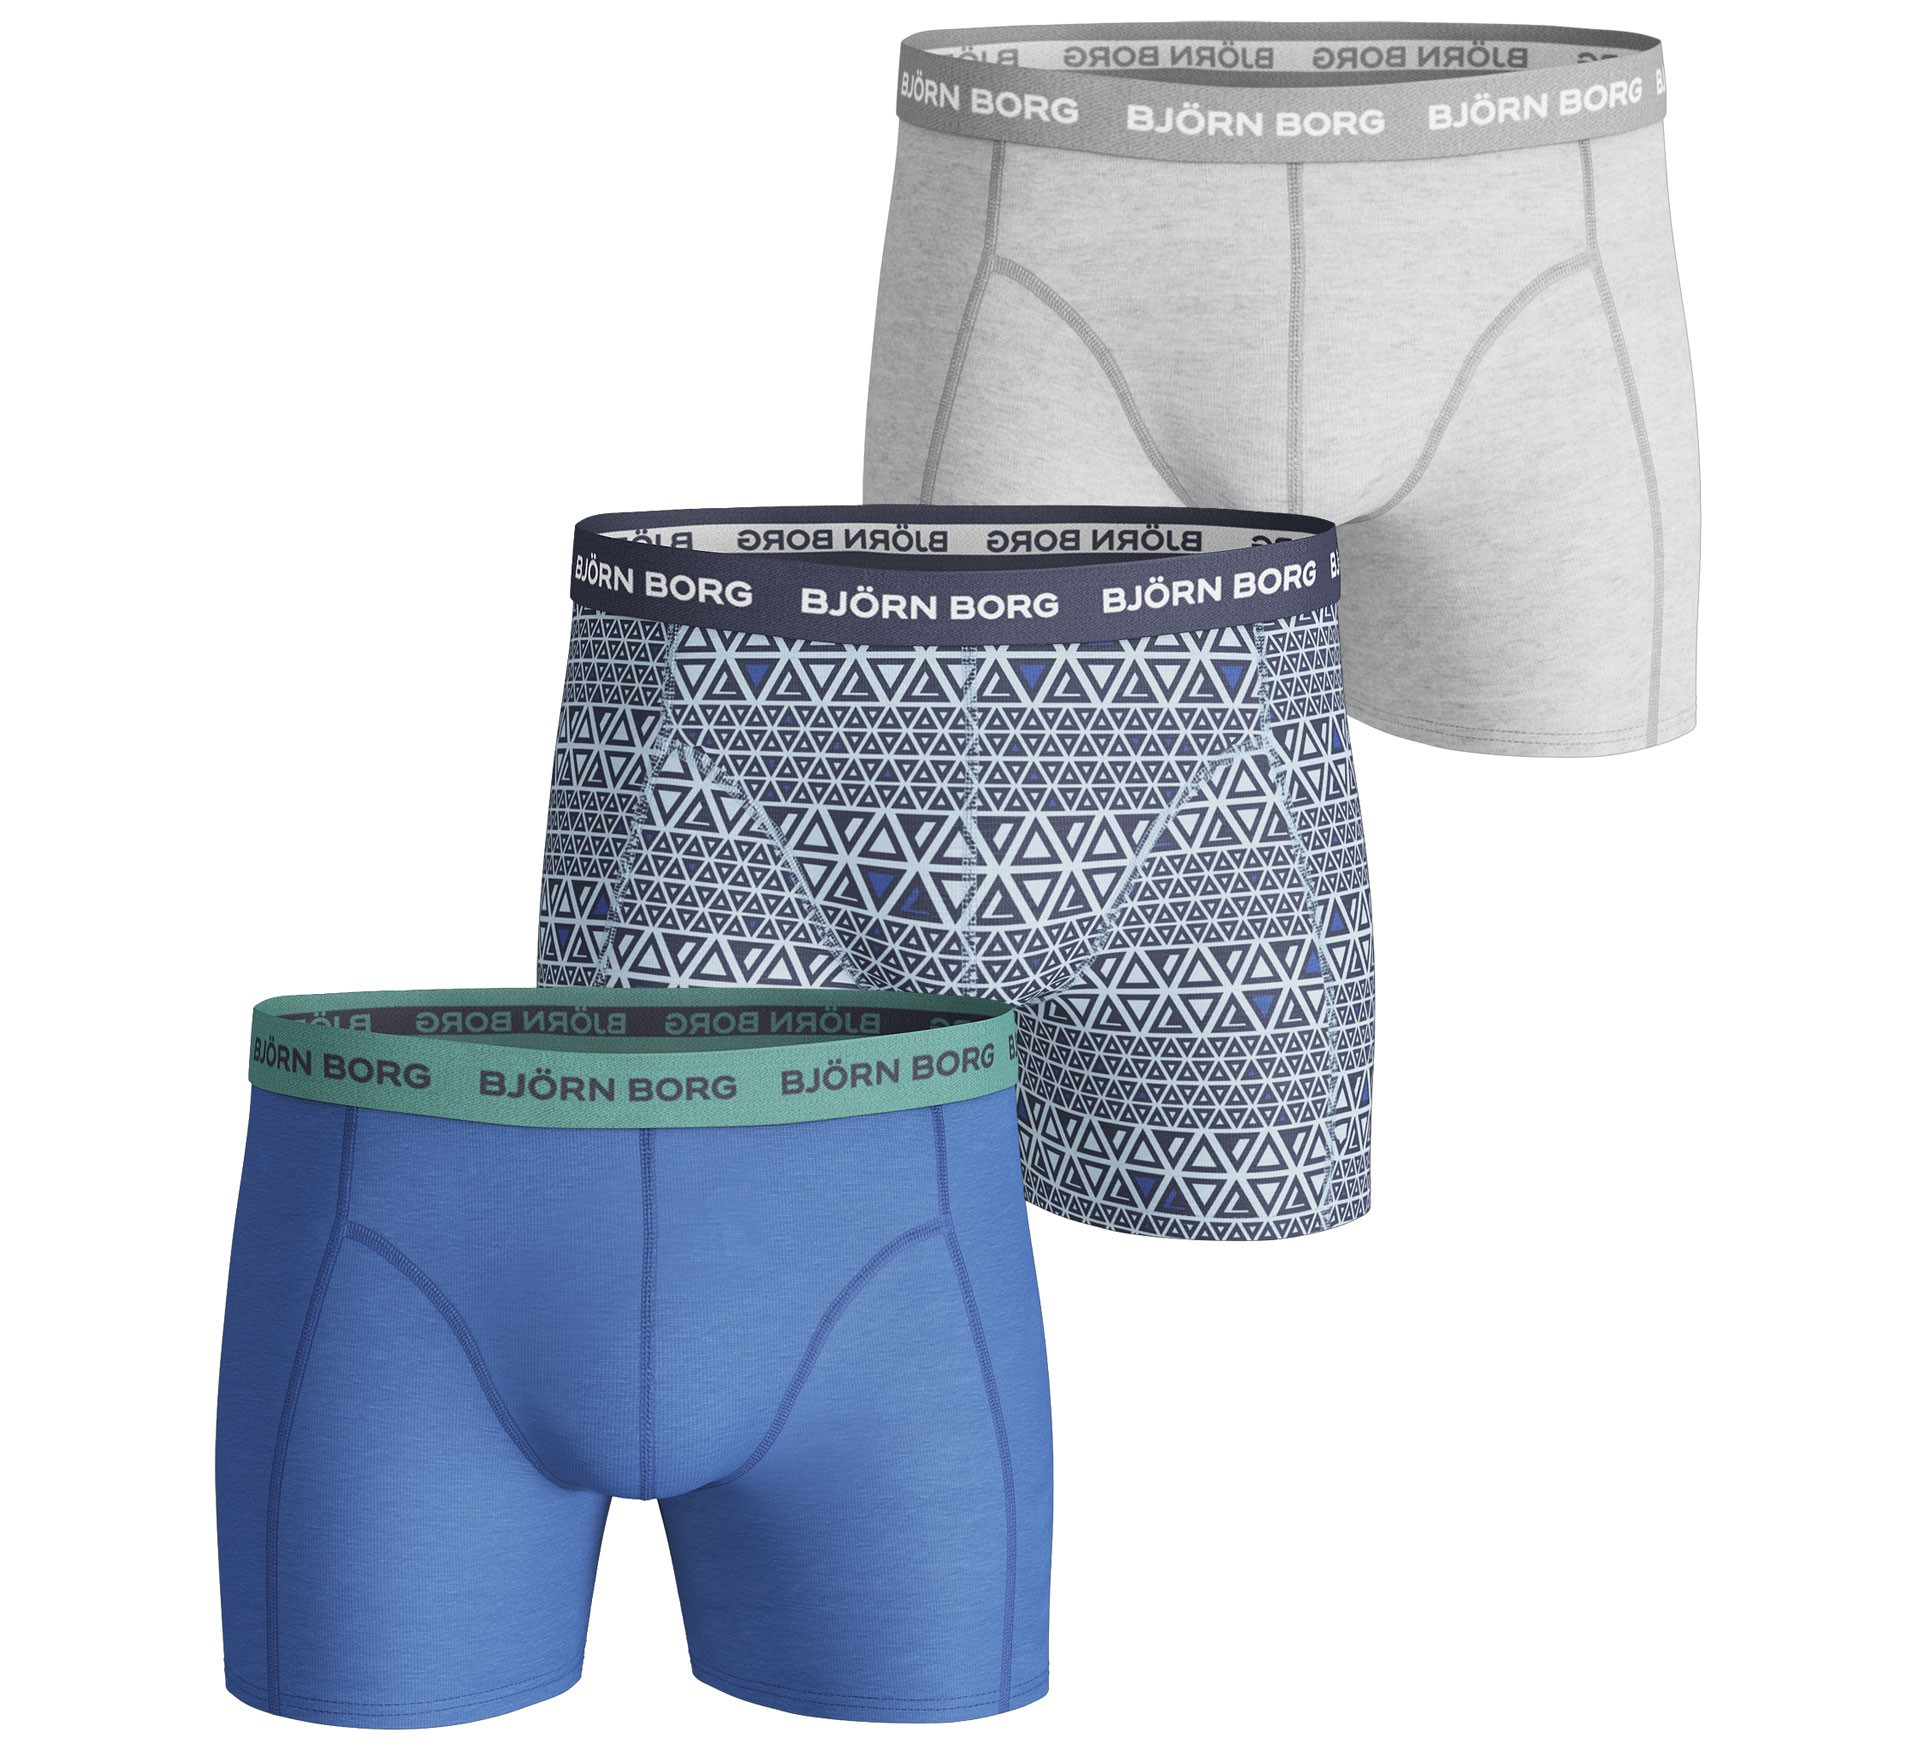 Björn Borg Triangle Boxershorts (3-pack)